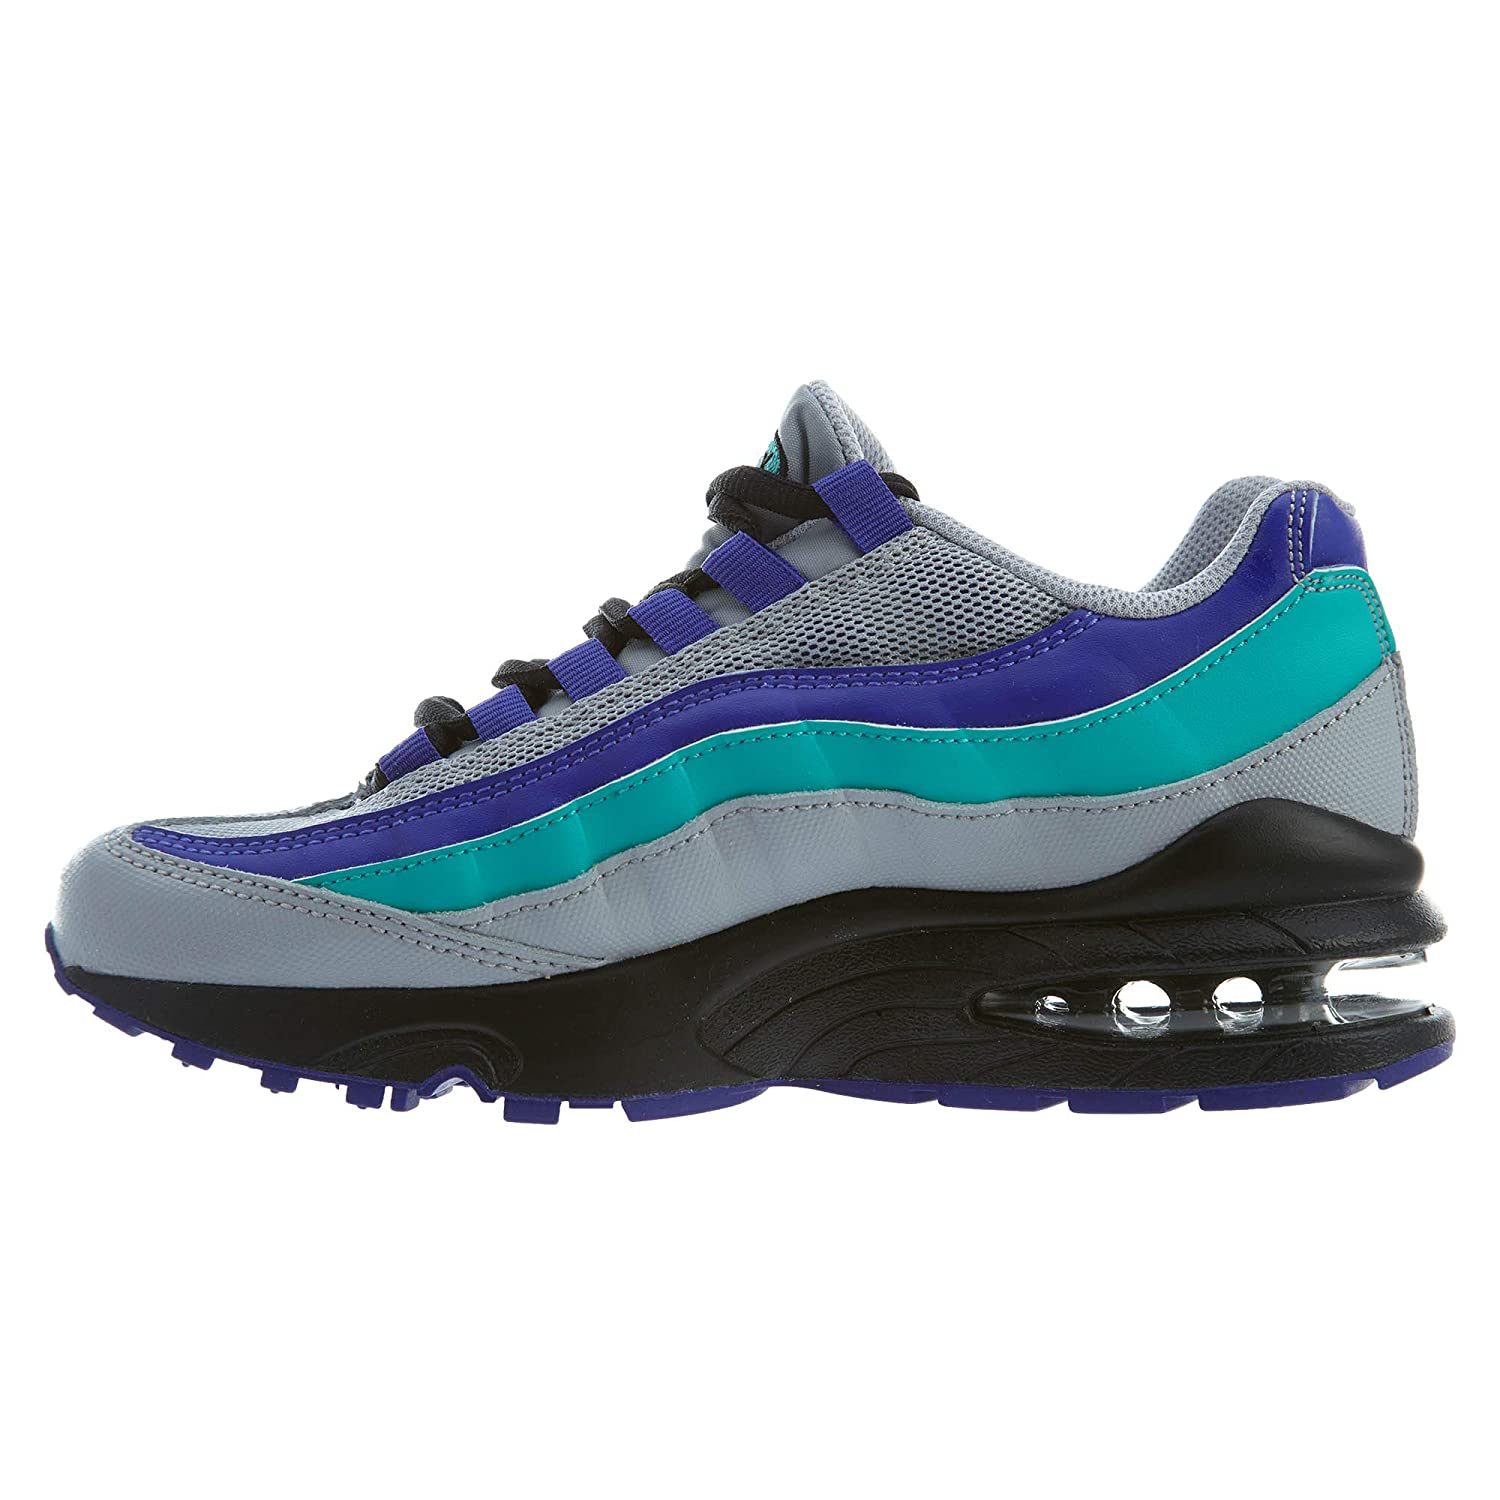 separation shoes 33c76 1b29f Nike Air Max 95 Big Kids Style : 905348-023 Size : 4.5 Y US ...